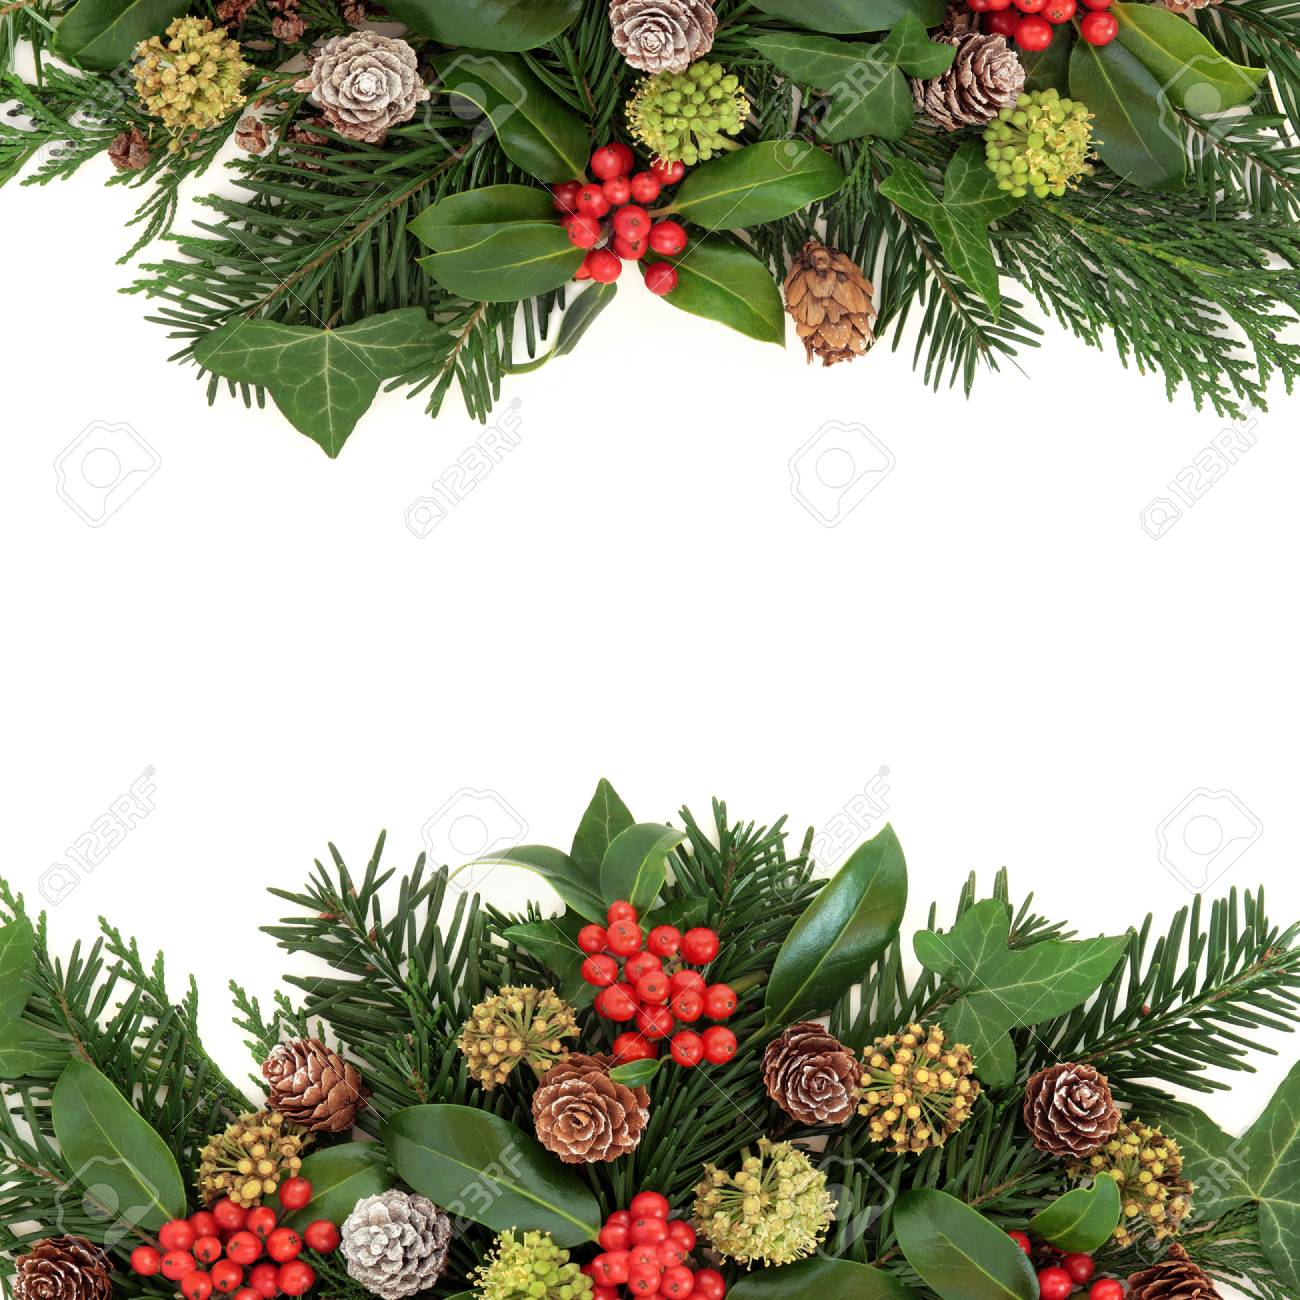 Christmas Greenery Images.Winter And Christmas Greenery Border With Holly Ivy Pine Cones